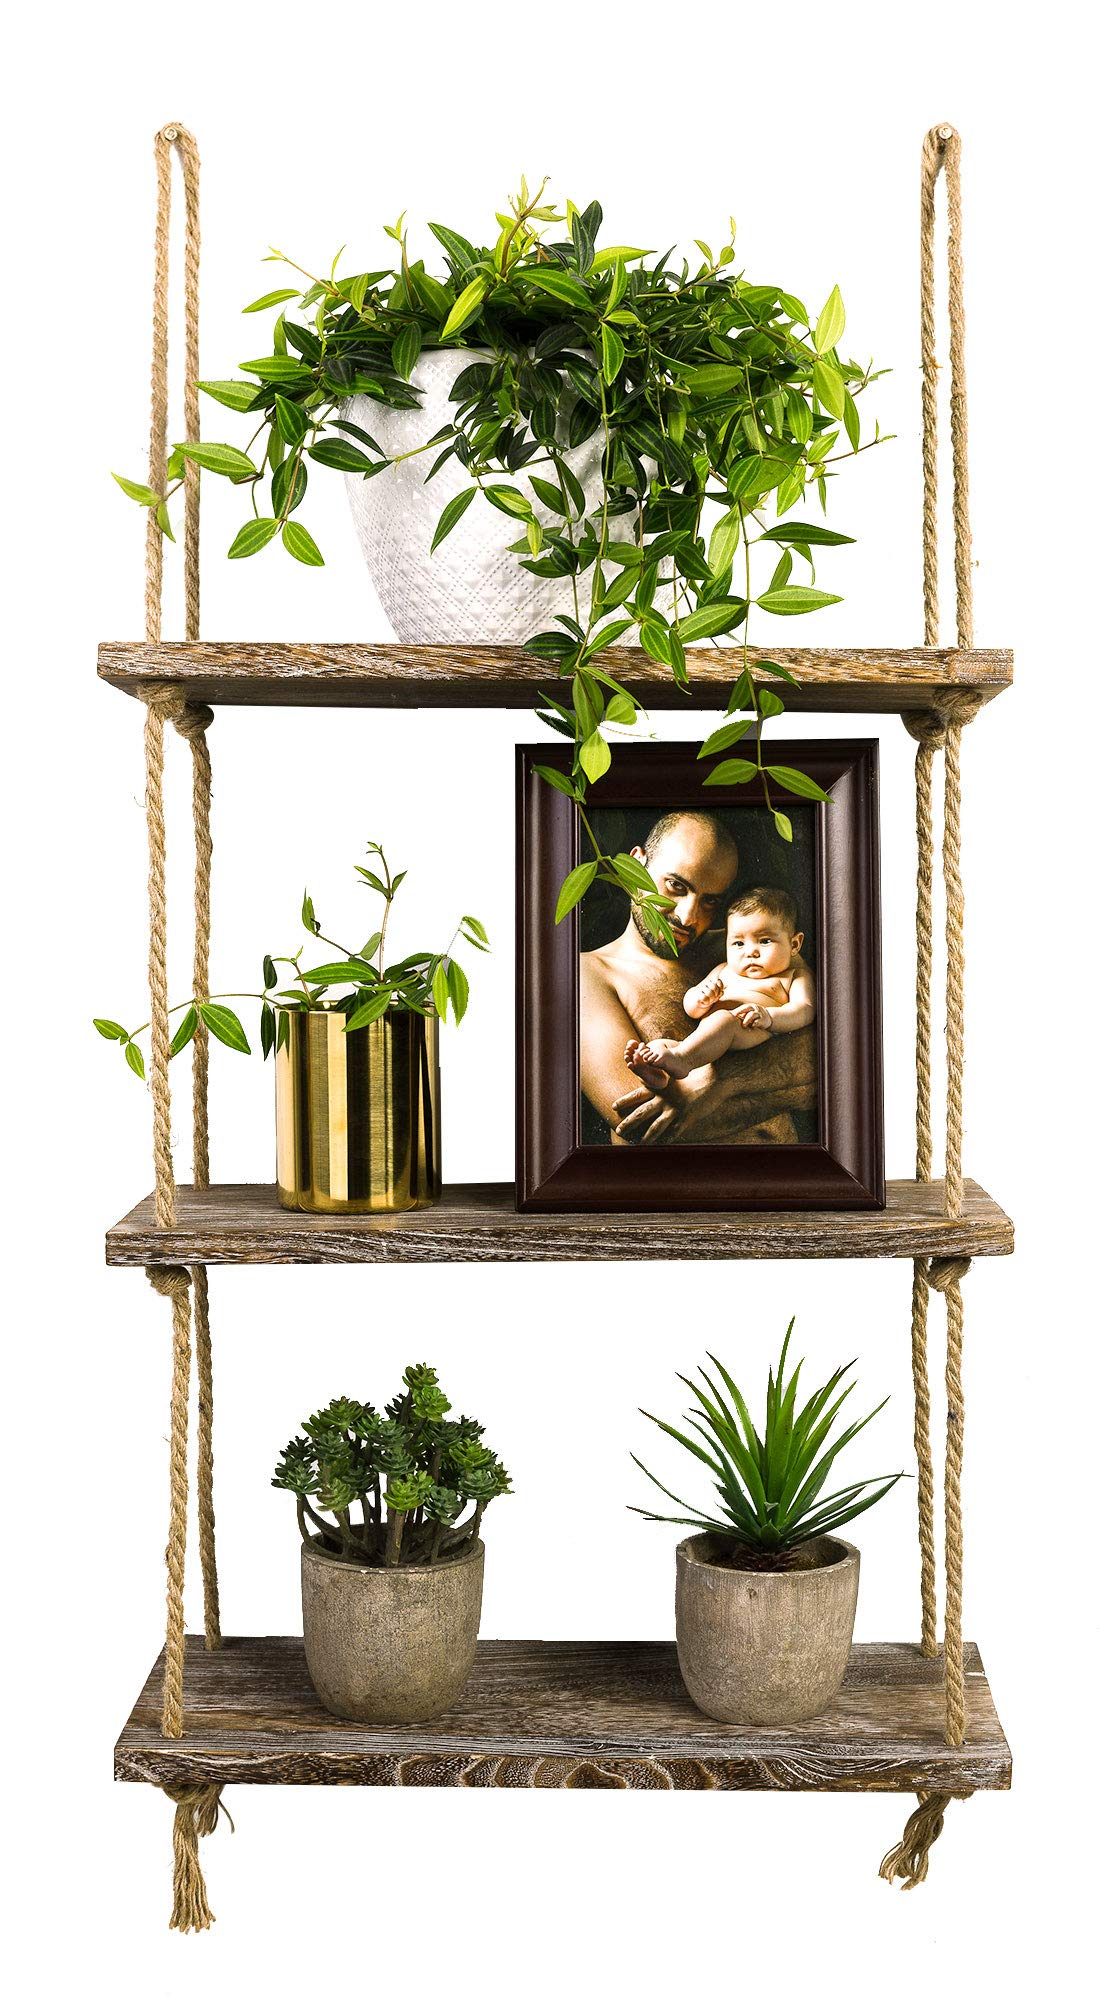 TIMEYARD Decorative Wall Hanging Shelf, 3 Tier Distressed Wood Jute Rope Floating Shelves, Rustic Home Wall Decor by TIMEYARD